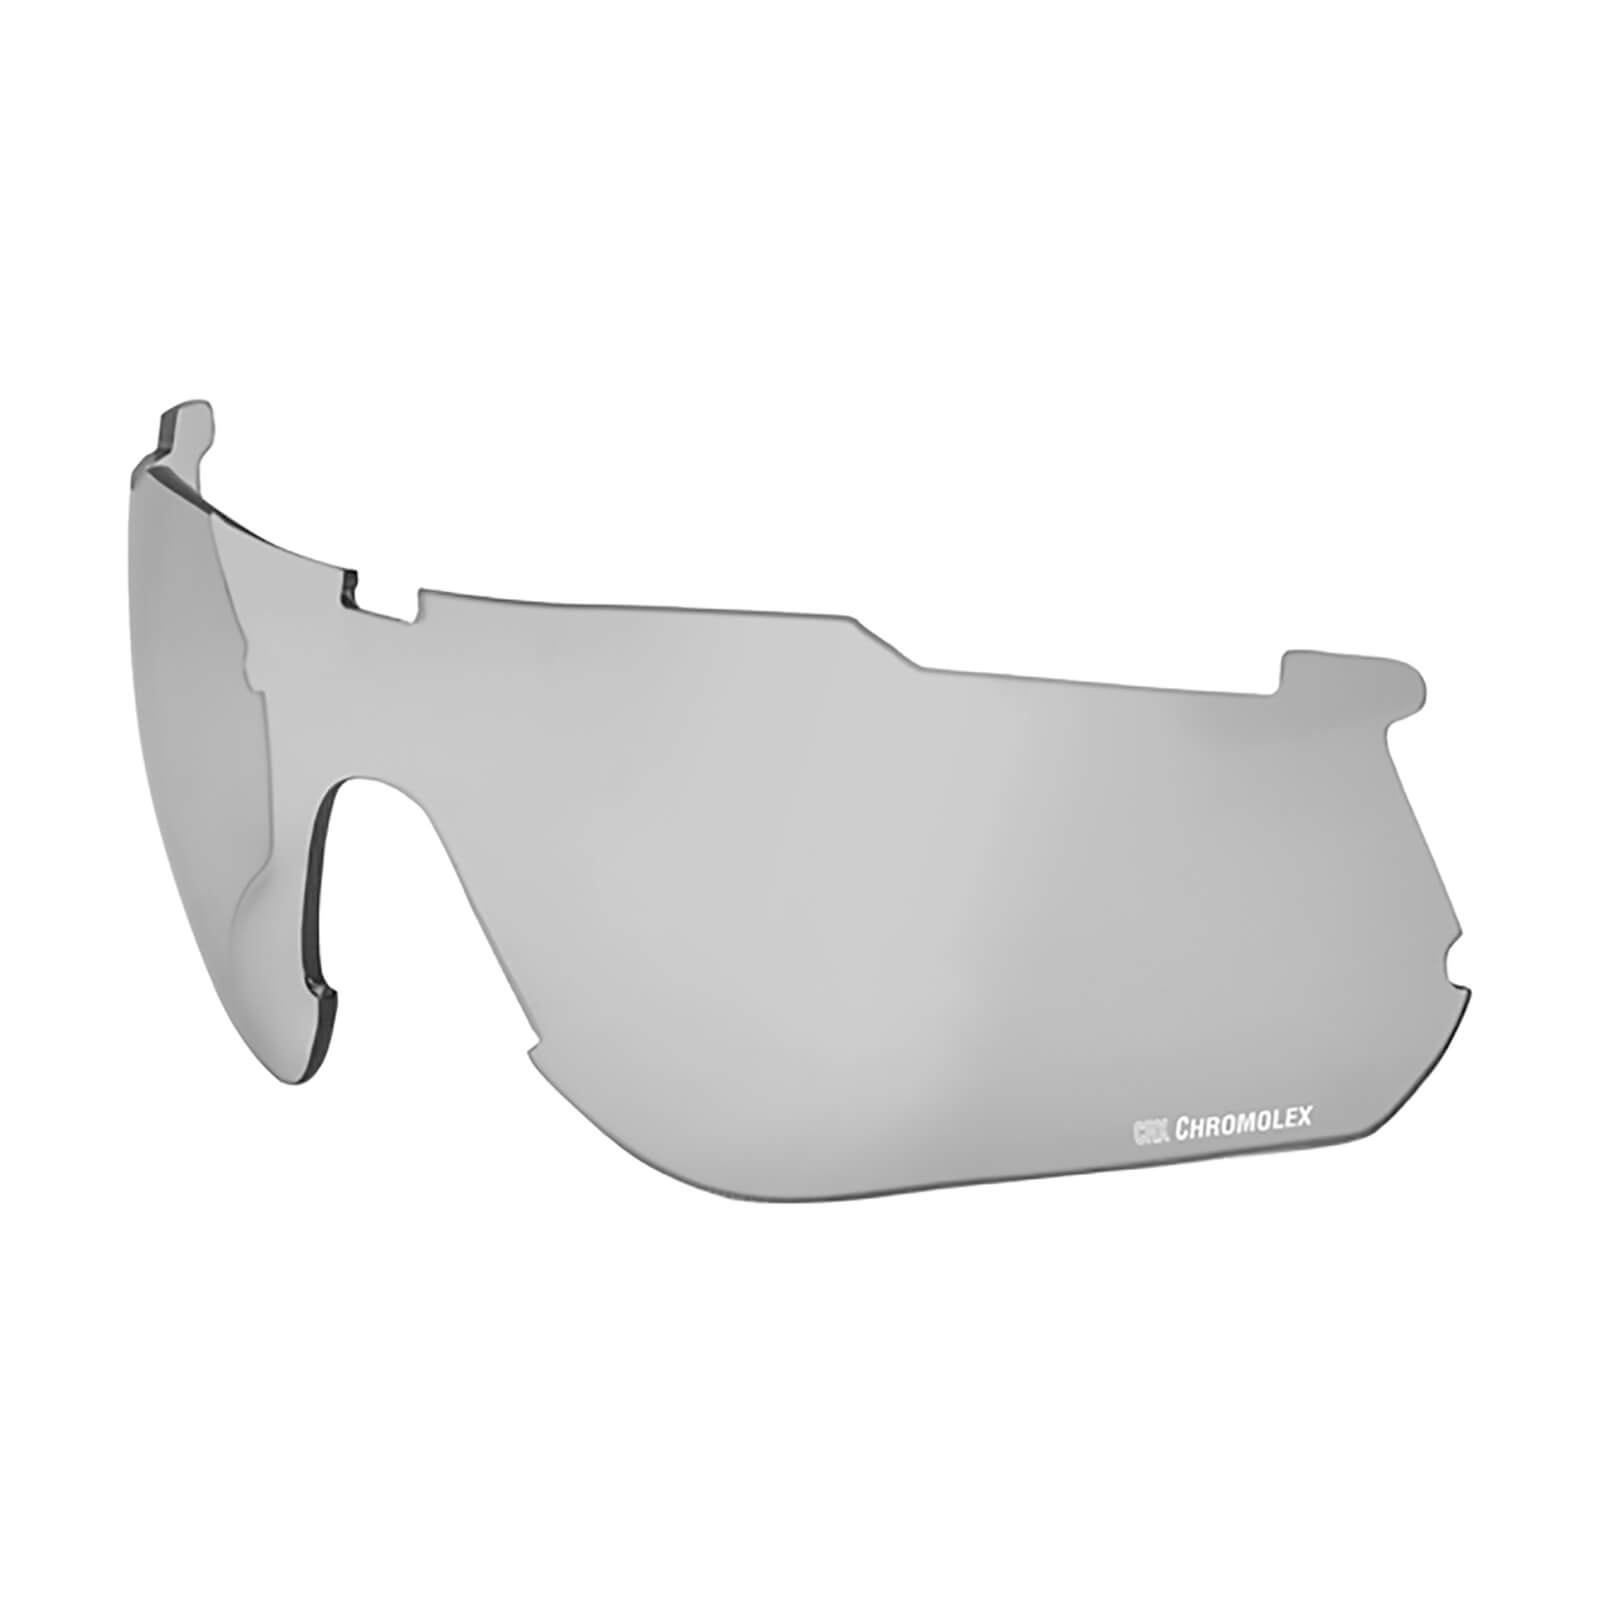 Salice 016 CRX Photochromic Lens - Smoke